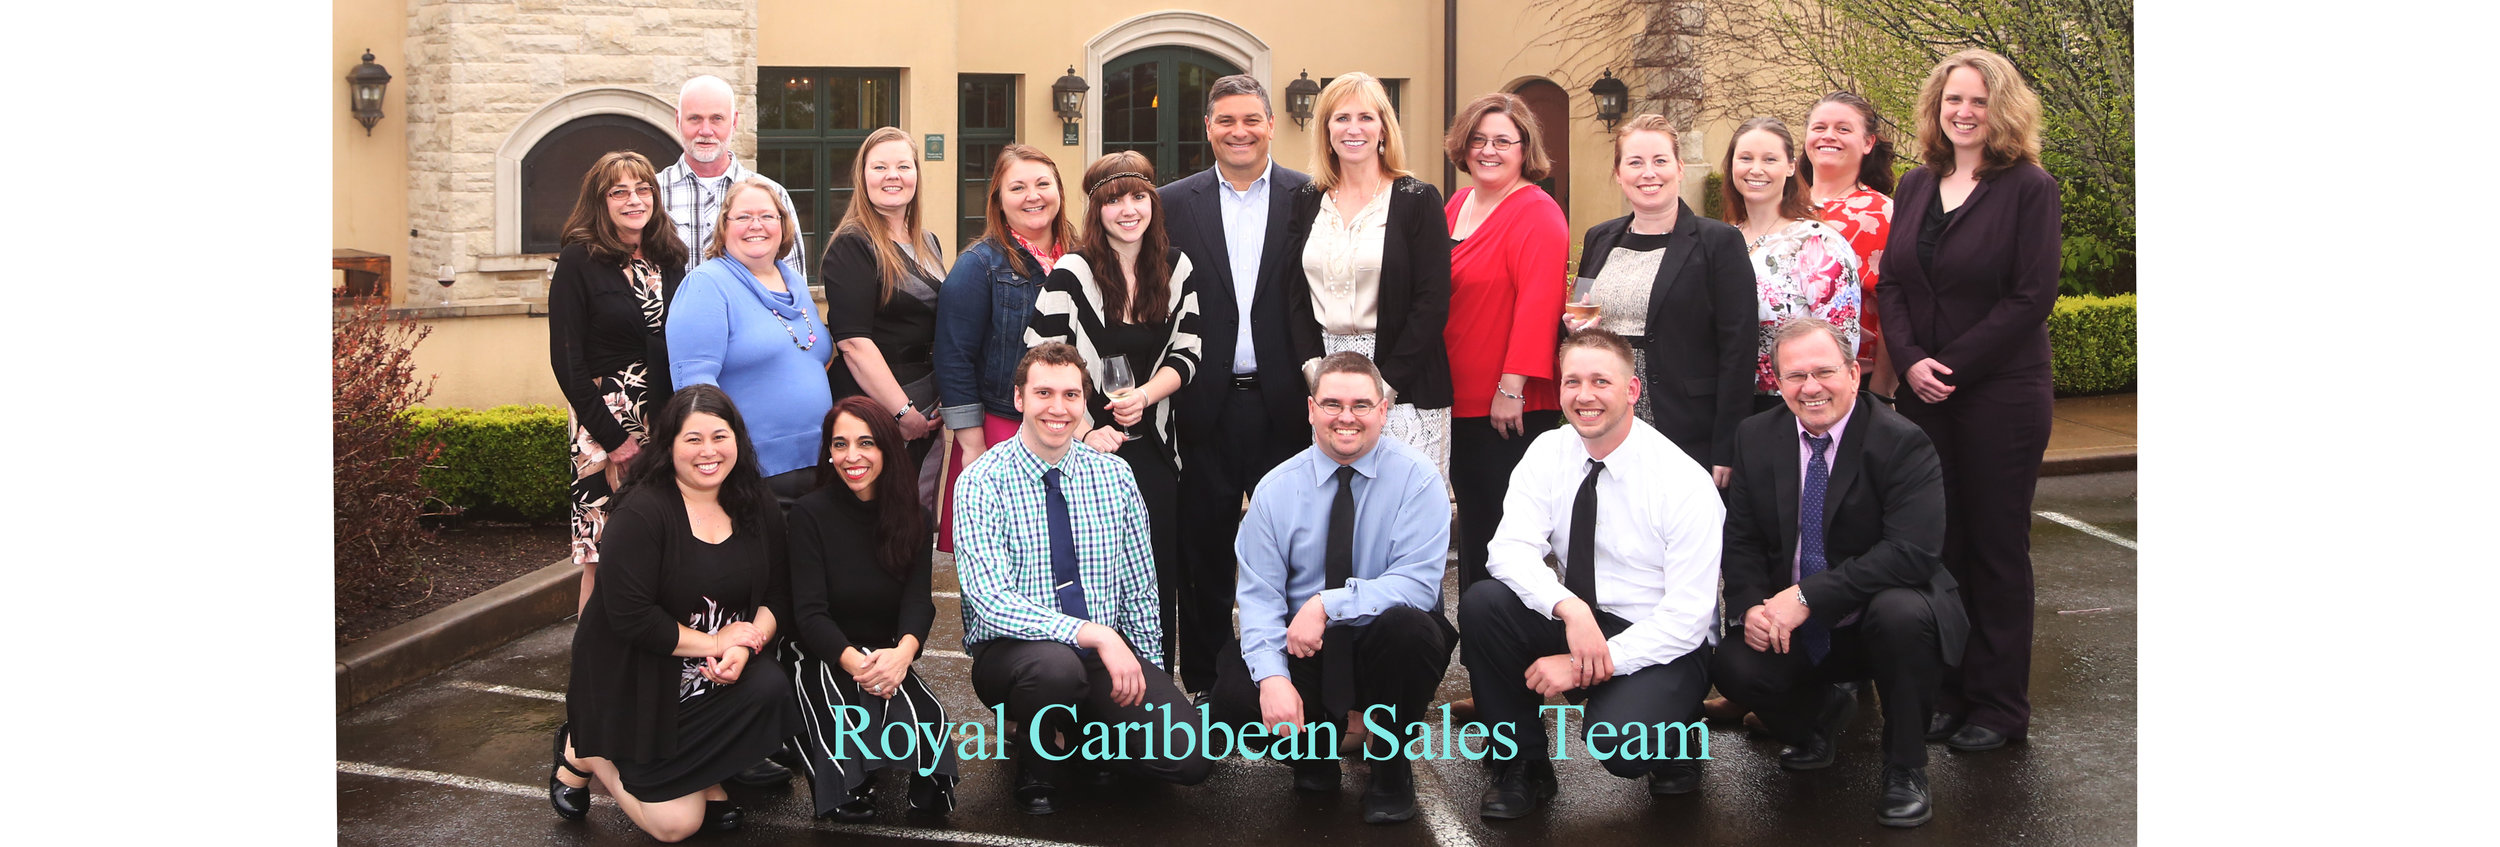 Royal Caribbean Corporate business and event photography Eugene Oregon.jpg